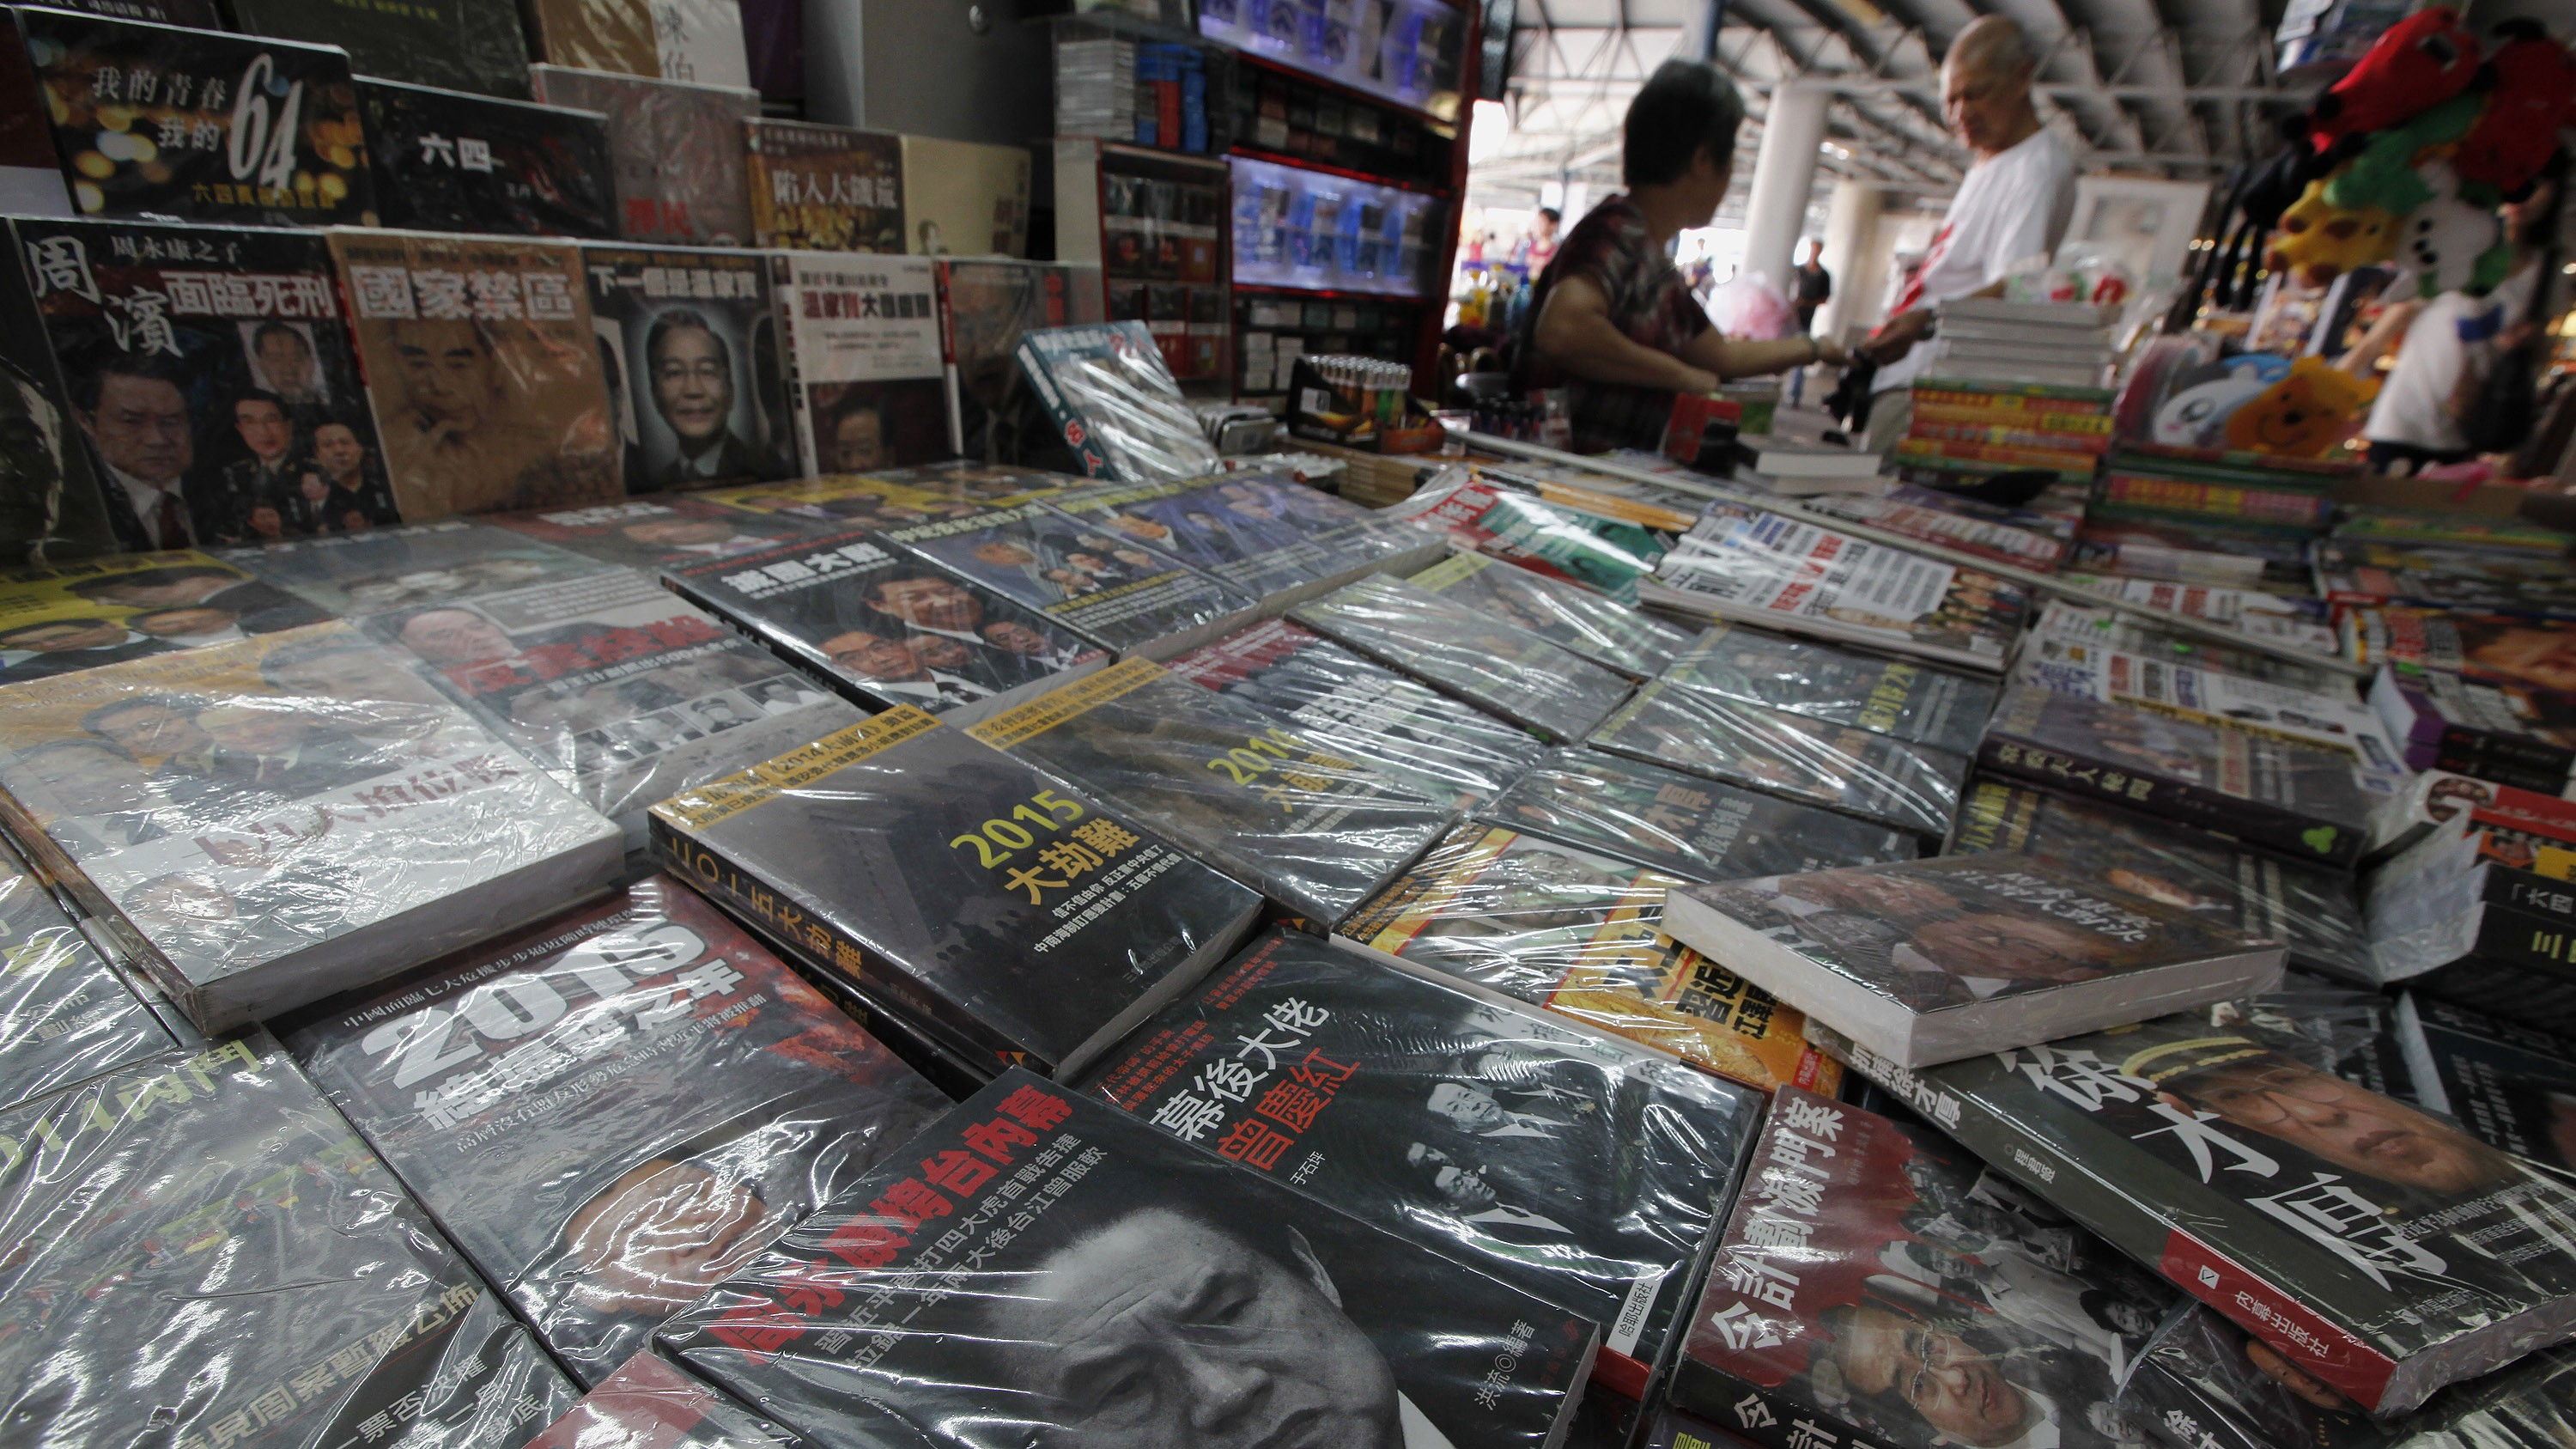 Books on China's then Politburo Standing Committee Member Zhou Yongkang are displayed at a newsstand in Hong Kong July 30, 2014. China's Communist Party said on Tuesday it had launched a corruption investigation into former domestic security chief Zhou, one of the country's most influential politicians of the last decade, in a case that has its origins in a party power struggle. REUTERS/Bobby Yip (CHINA - Tags: POLITICS CRIME LAW) - RTR40L9C